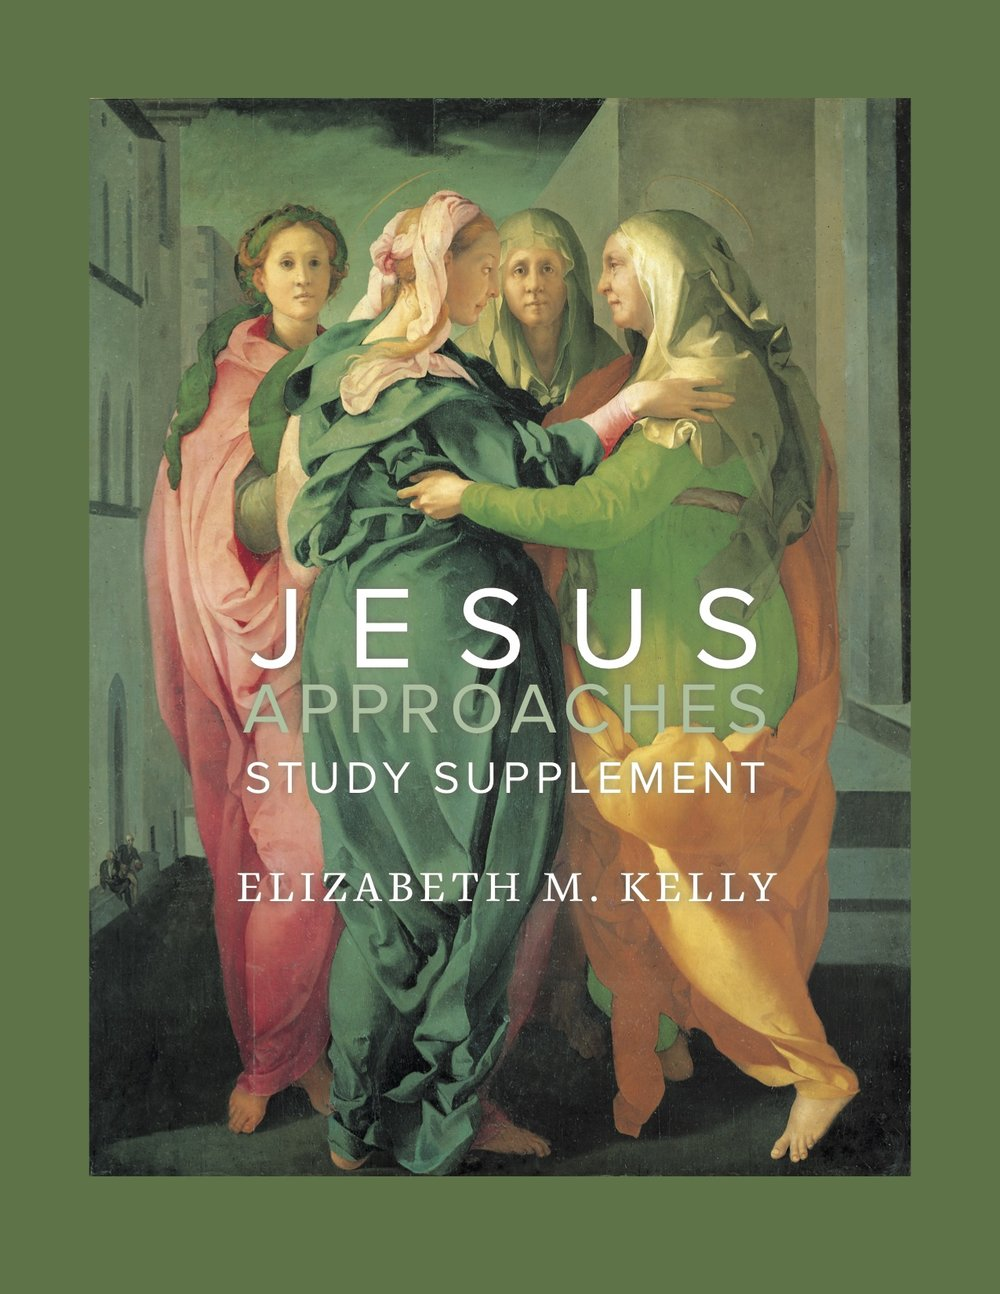 Study Supplement - Exclusive content expands the book into a Scripture Study